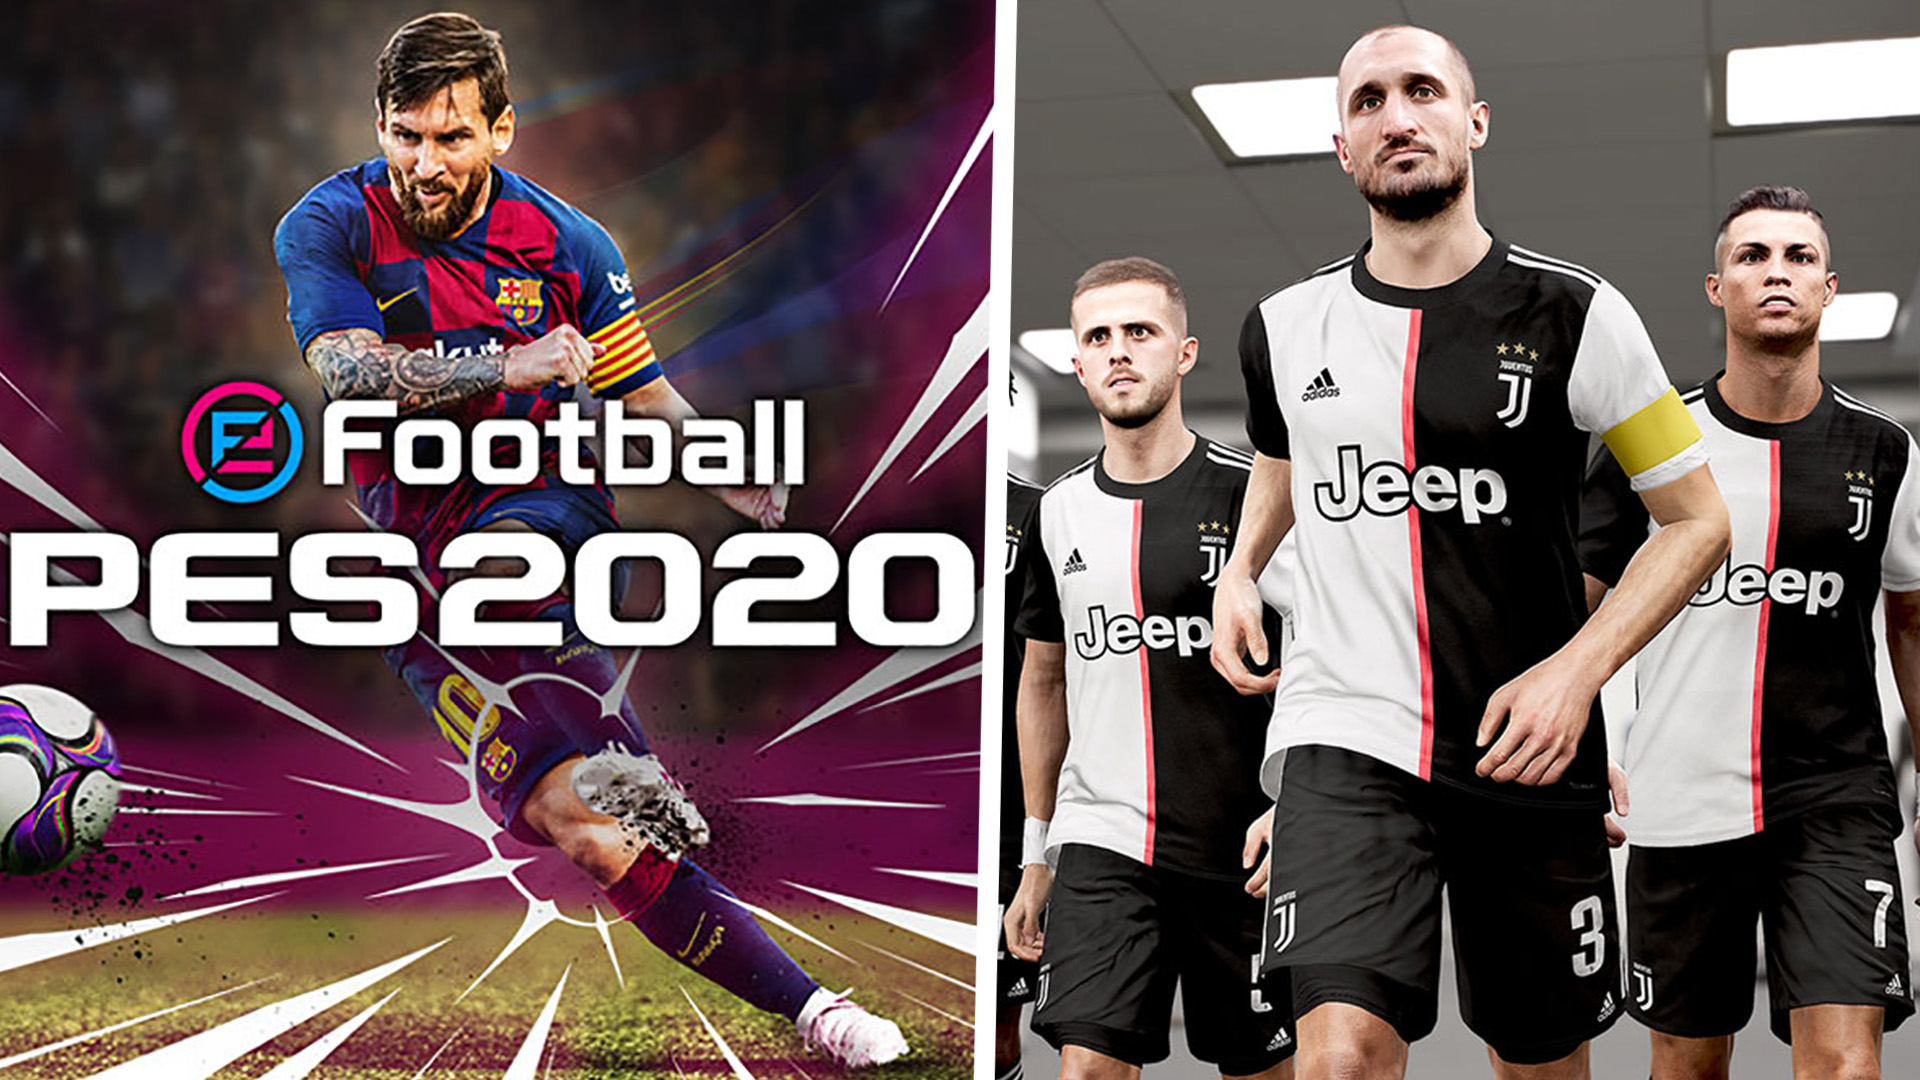 Konami previews PES 2020 for Asia at International Champions Cup in Singapore